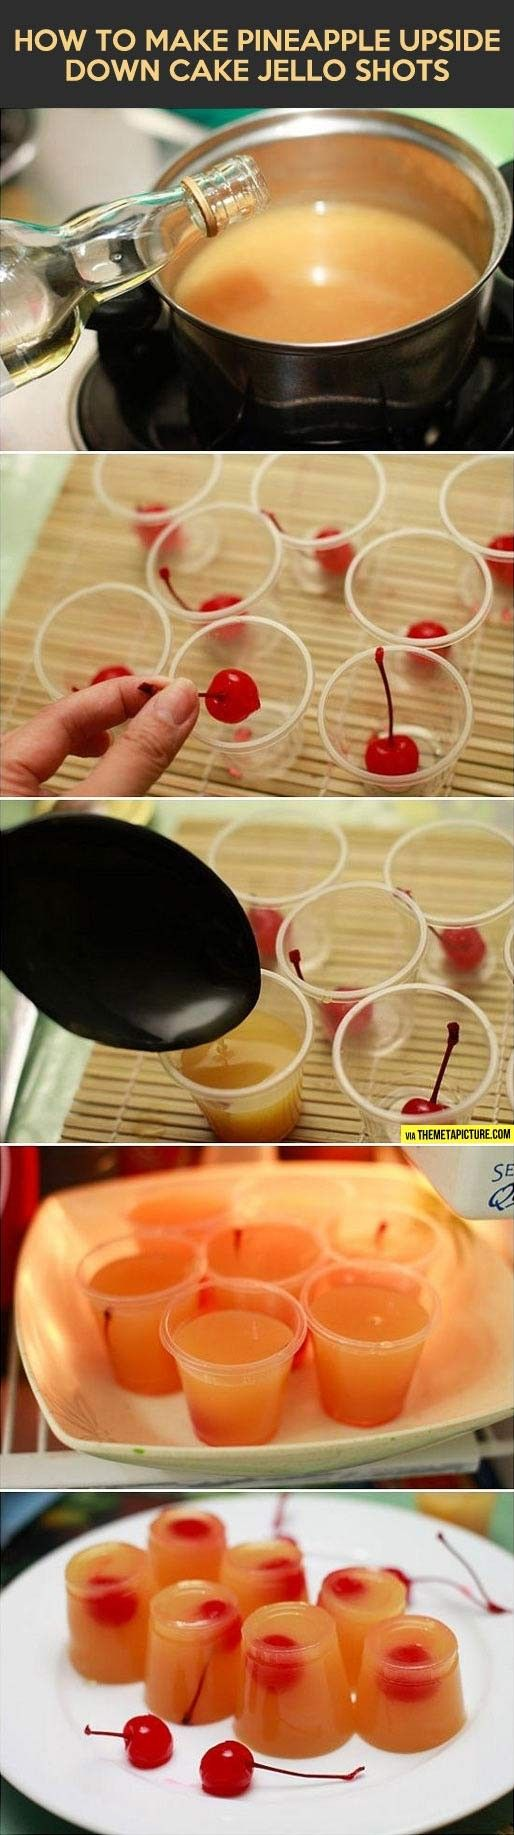 Pineapple upside down cake Jell-o shots- made whipped cream vodka.